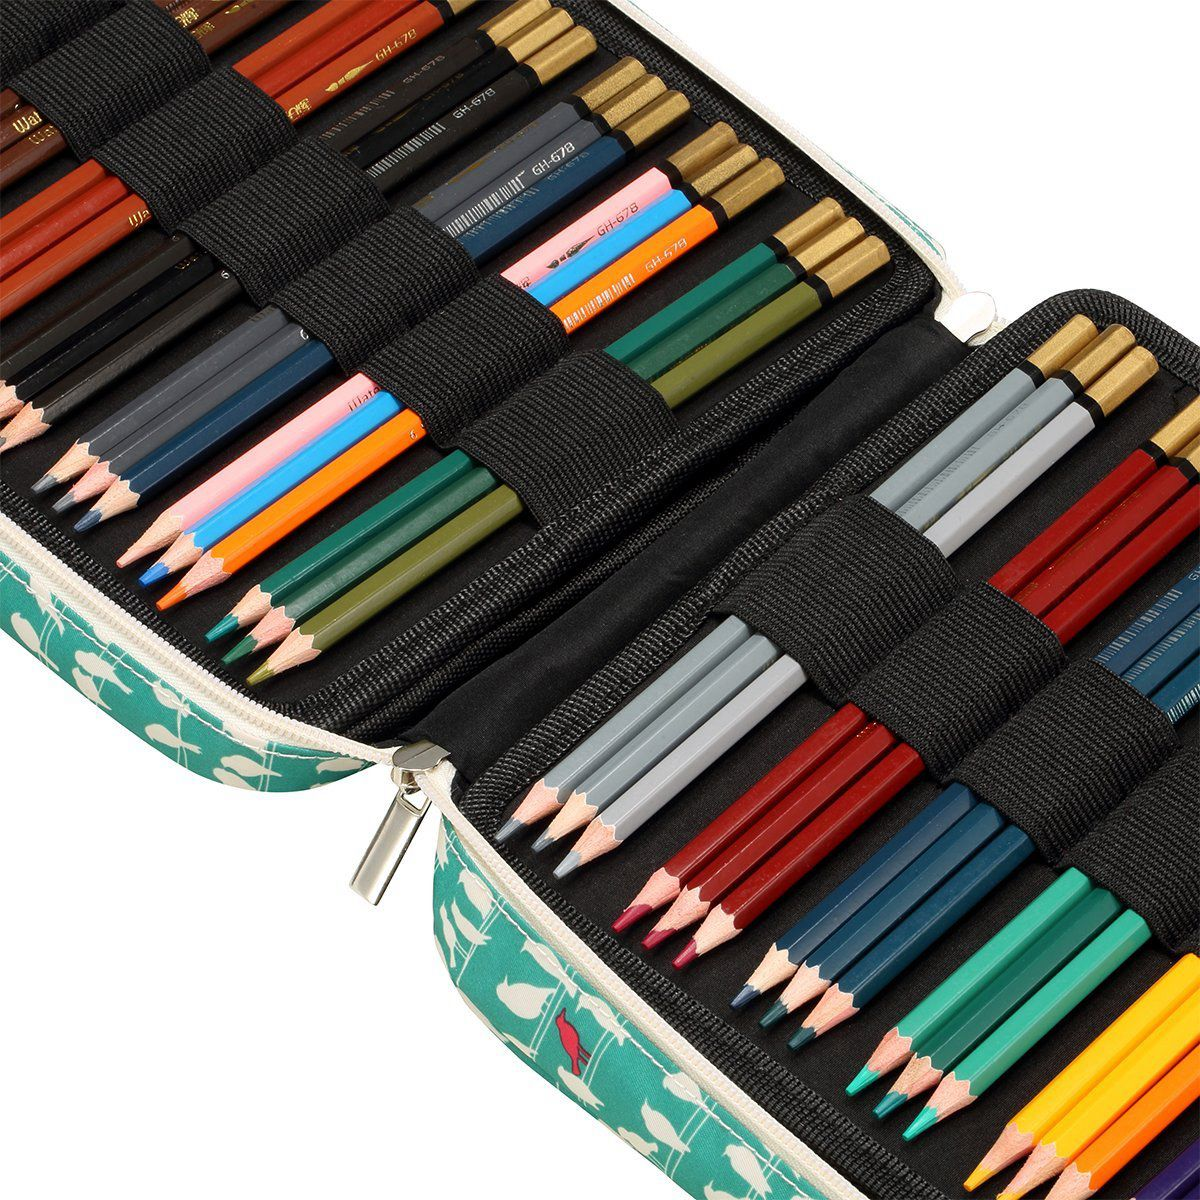 150 Slots Colored Pencils Universal Pencil Bag Pen Case School Stationery Pencil Case Drawing Painting Storage Pouch Pencil Box